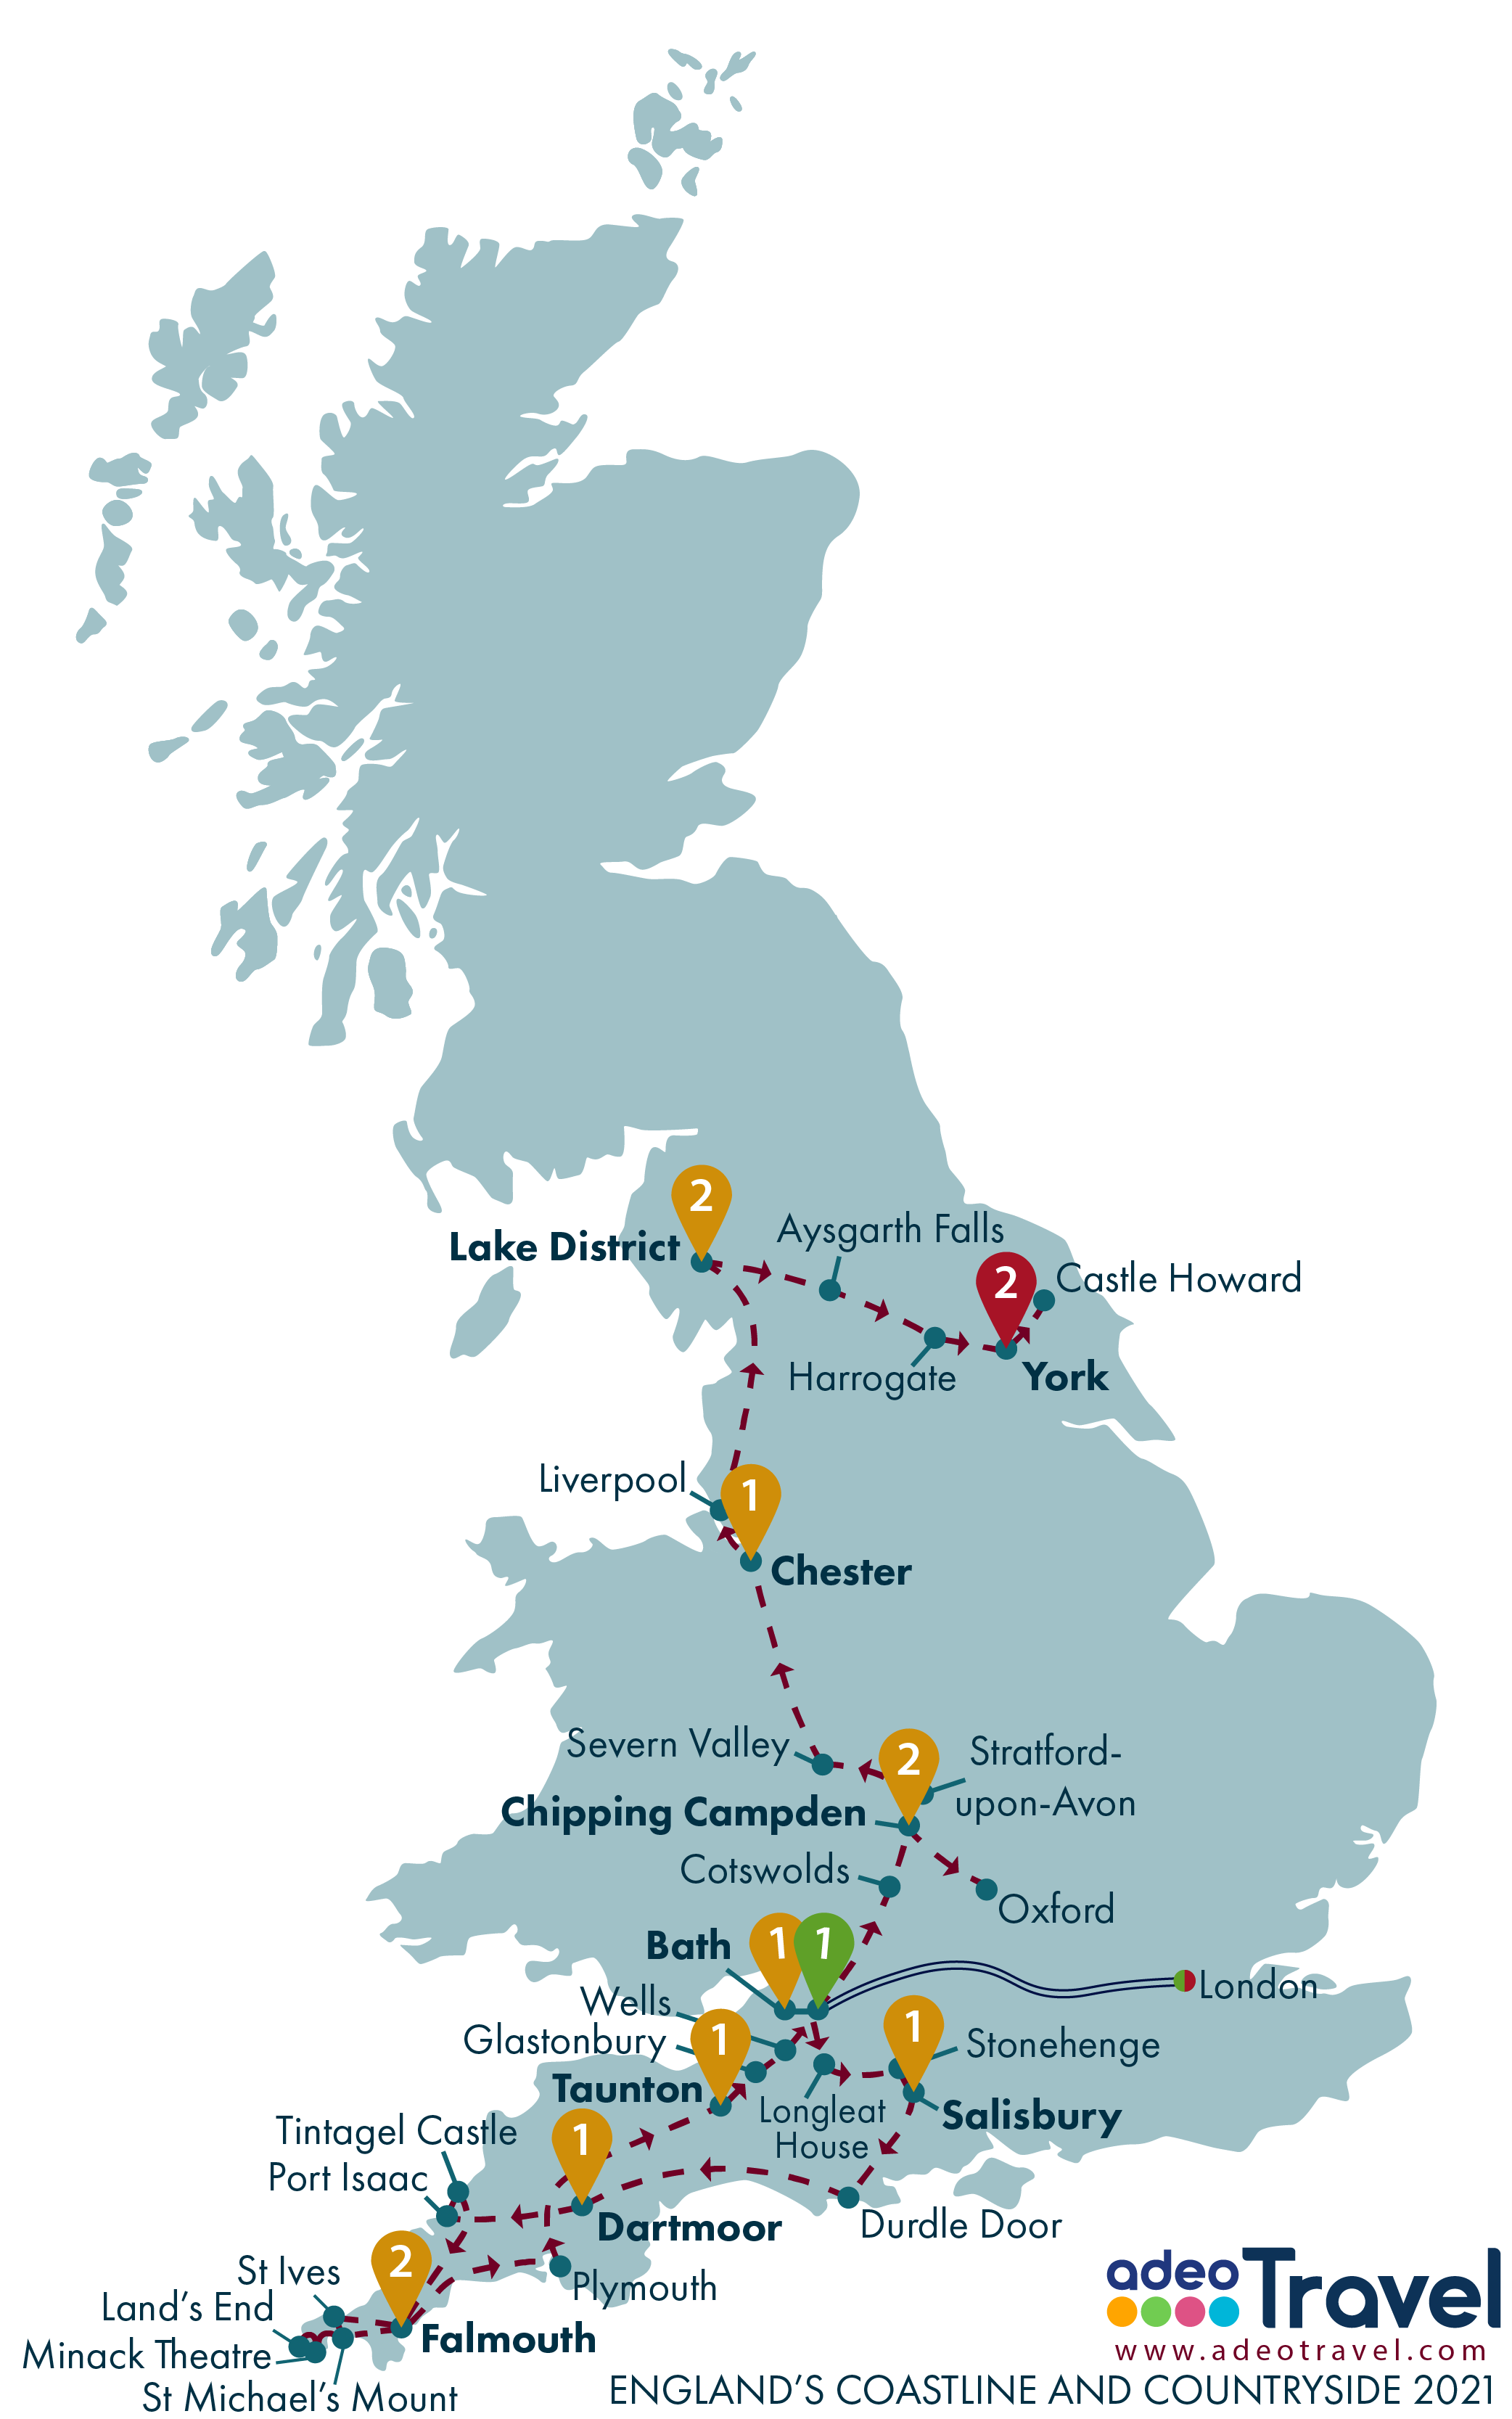 Map - England's Coastline and Countryside 2021